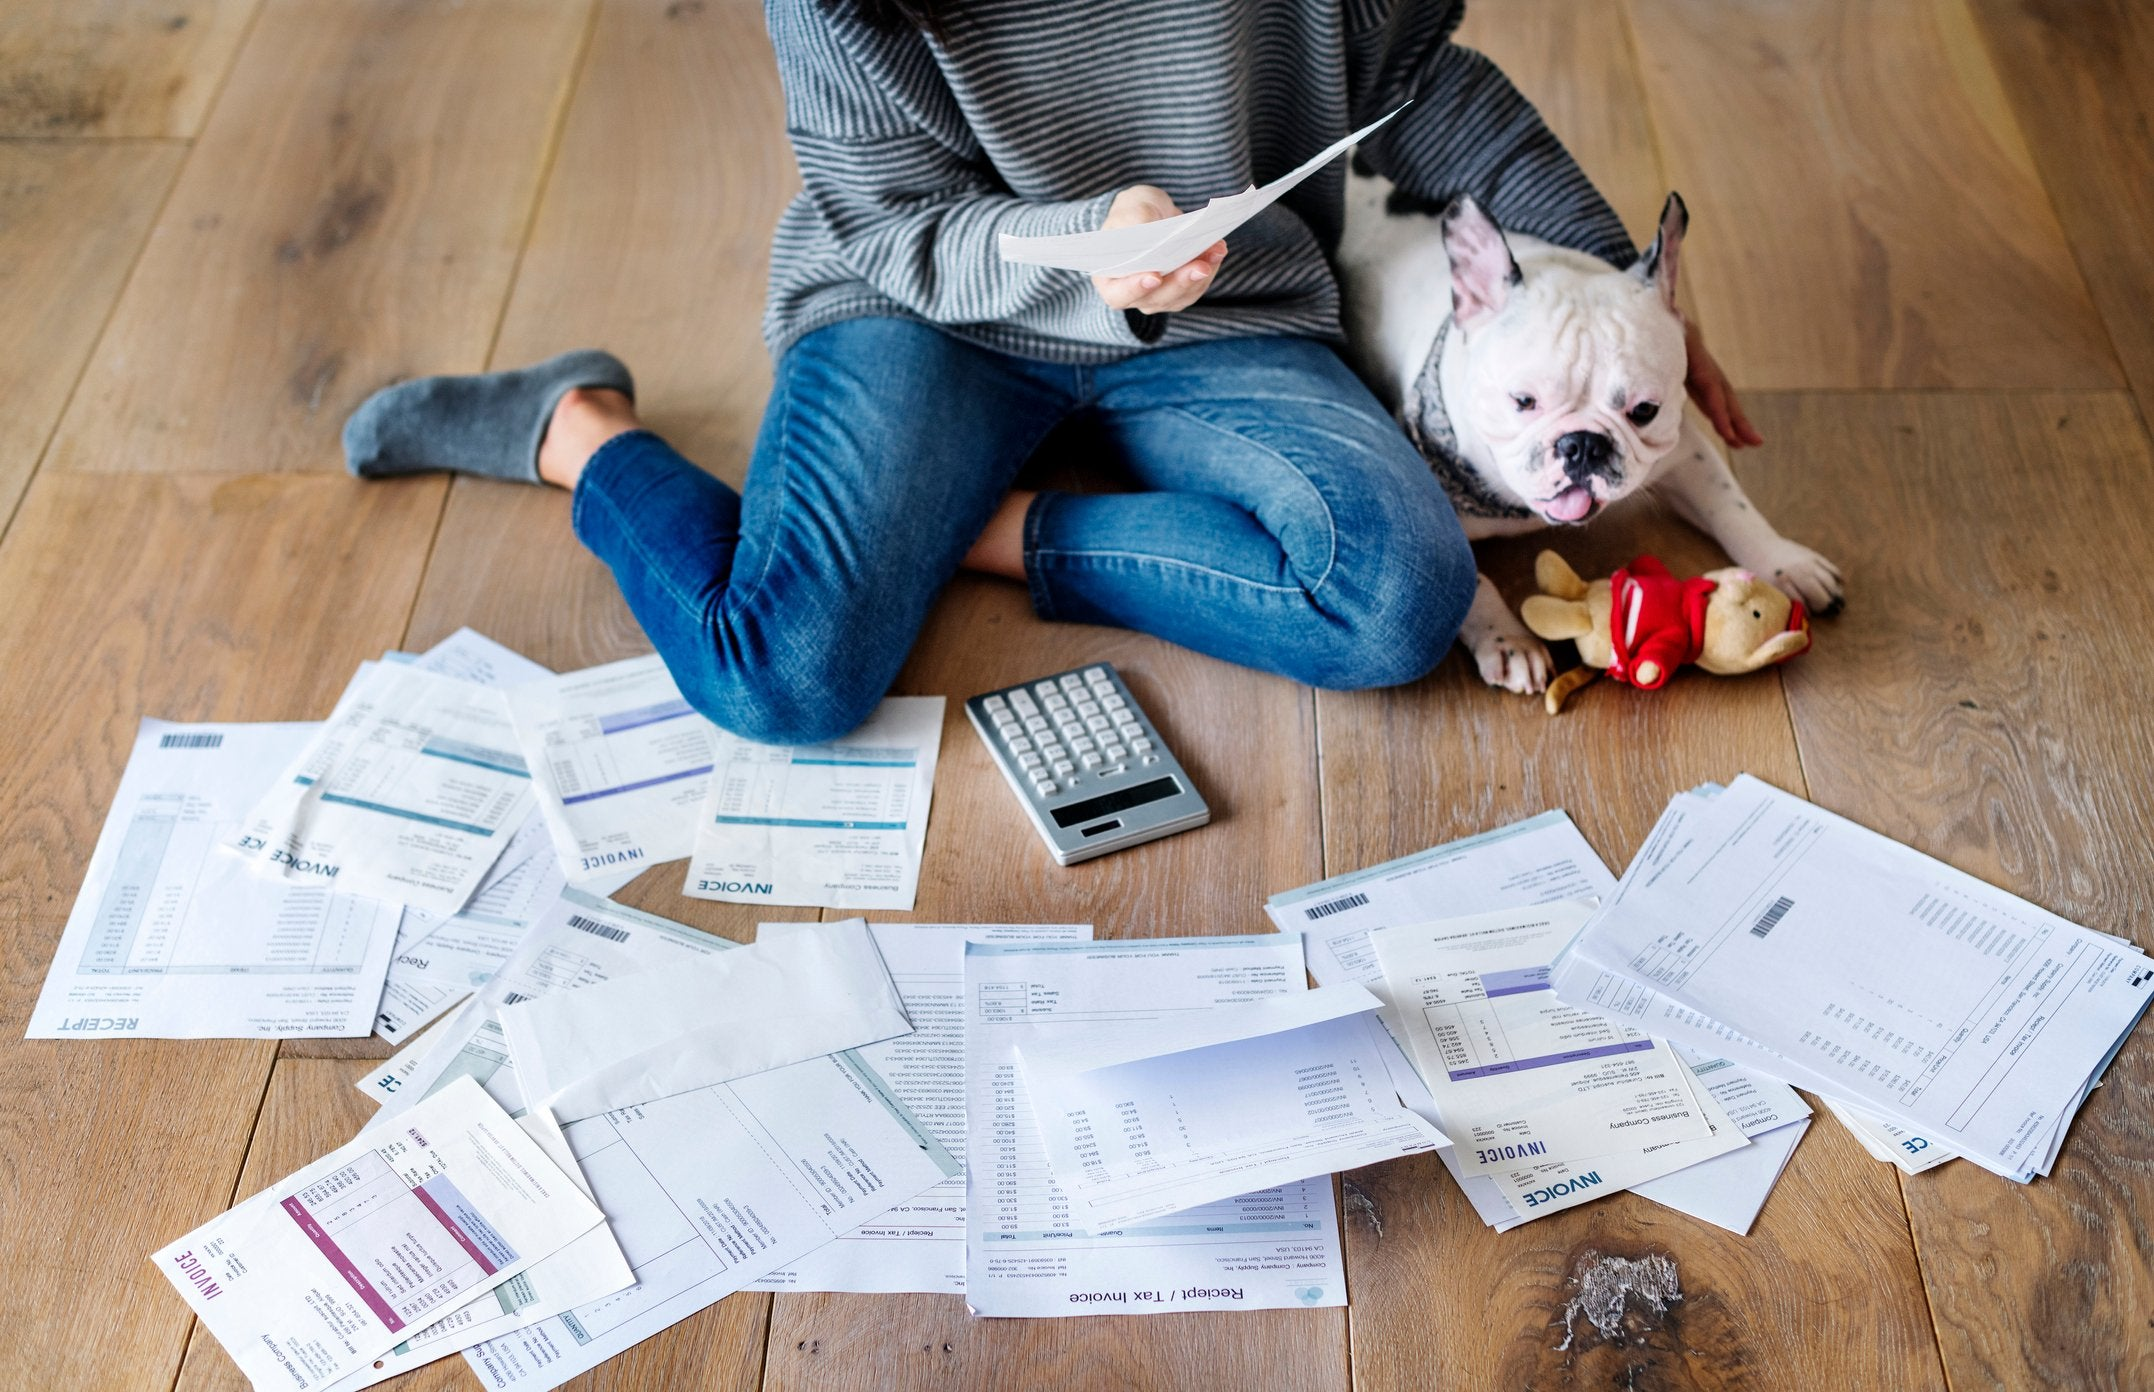 A woman sits on the floor next to her French bulldog and looks at a pile of bills.